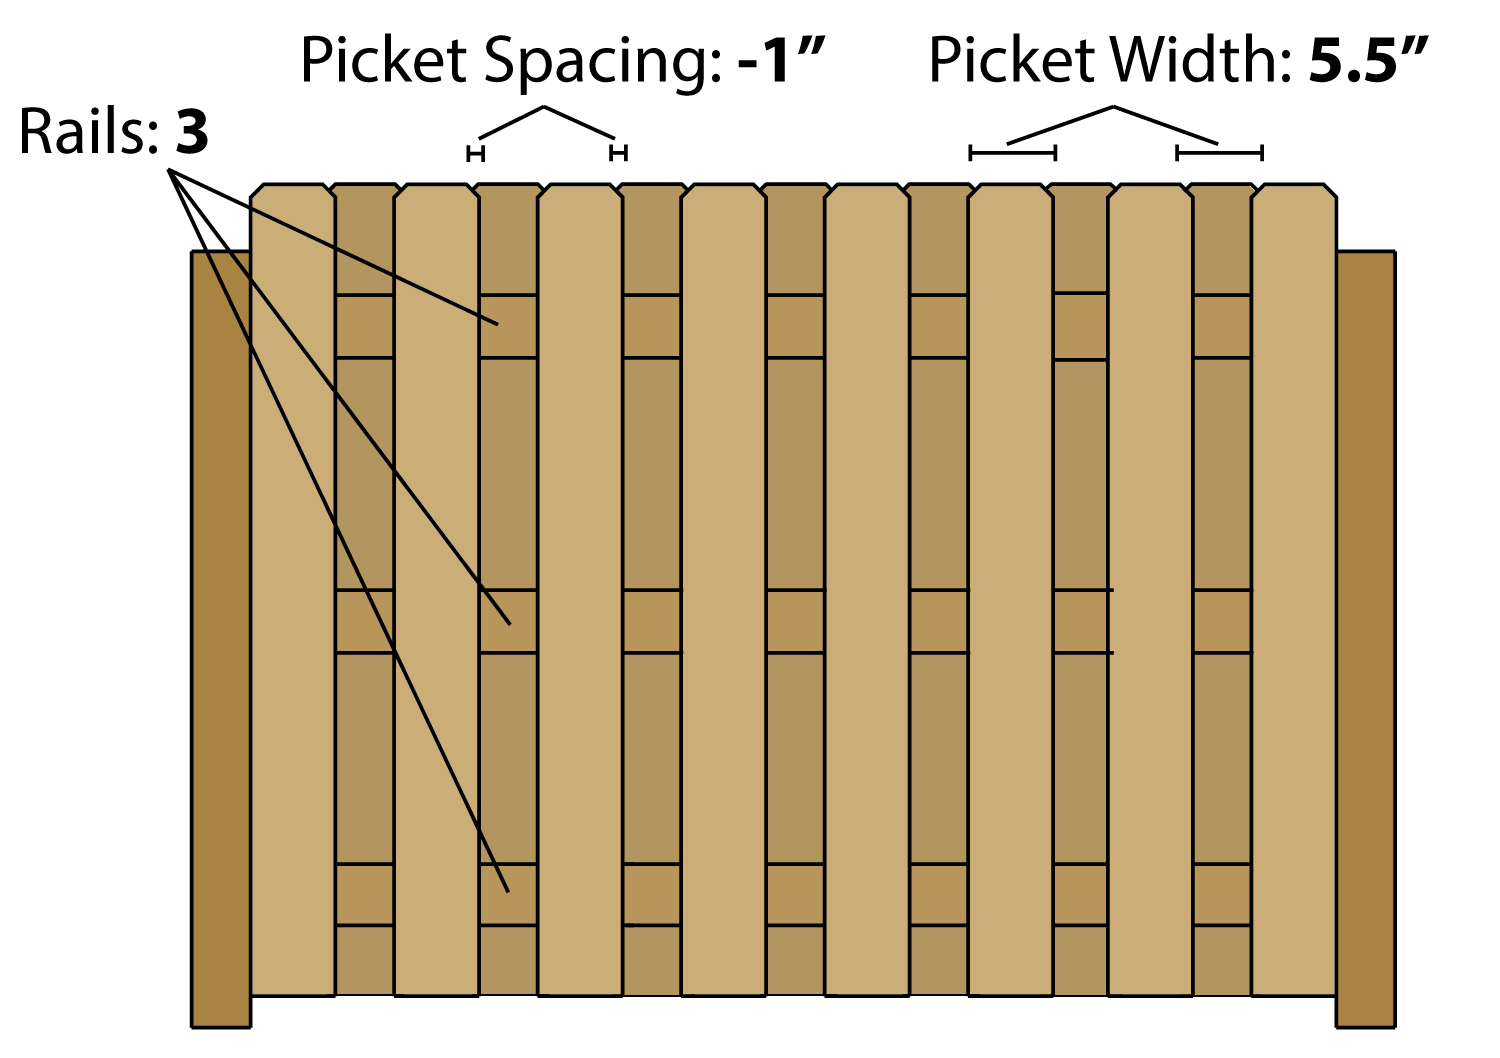 Fence calculator estimate wood fencing materials and for Lumber calculator for walls